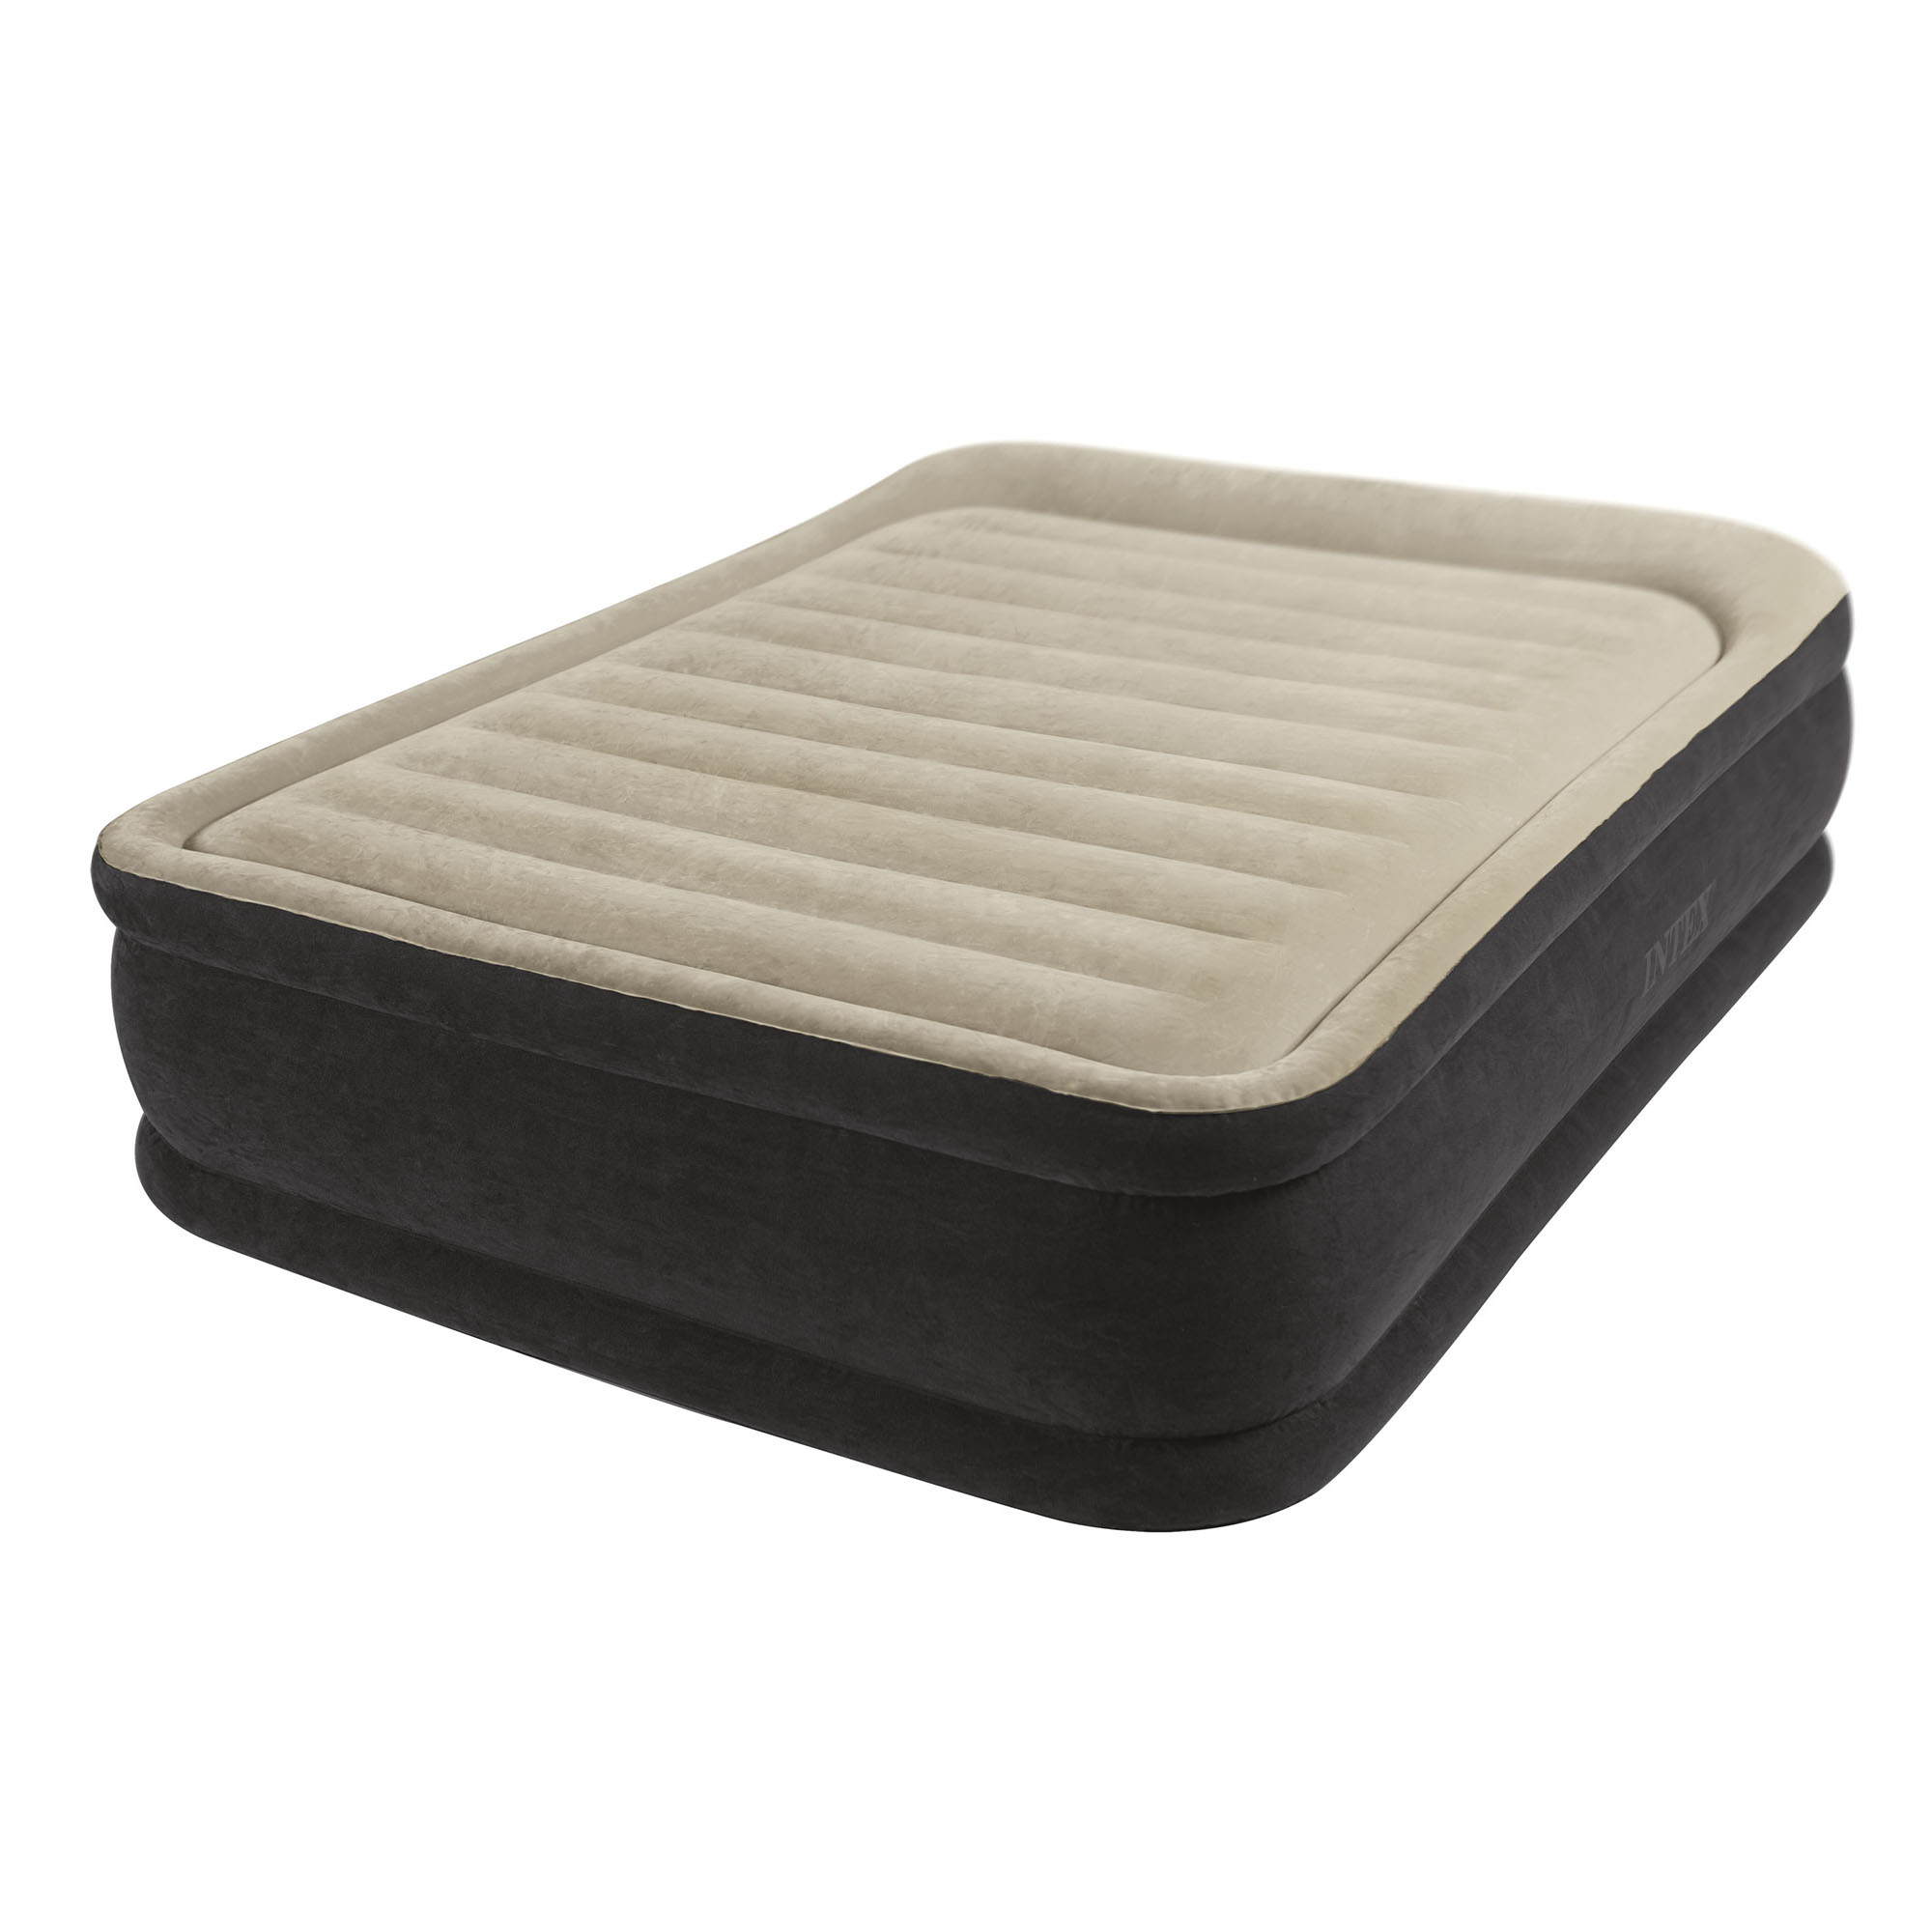 "Intex Premium Dura-Beam Comfort 13"" Airbed w  Built-In Air Pump, Queen 